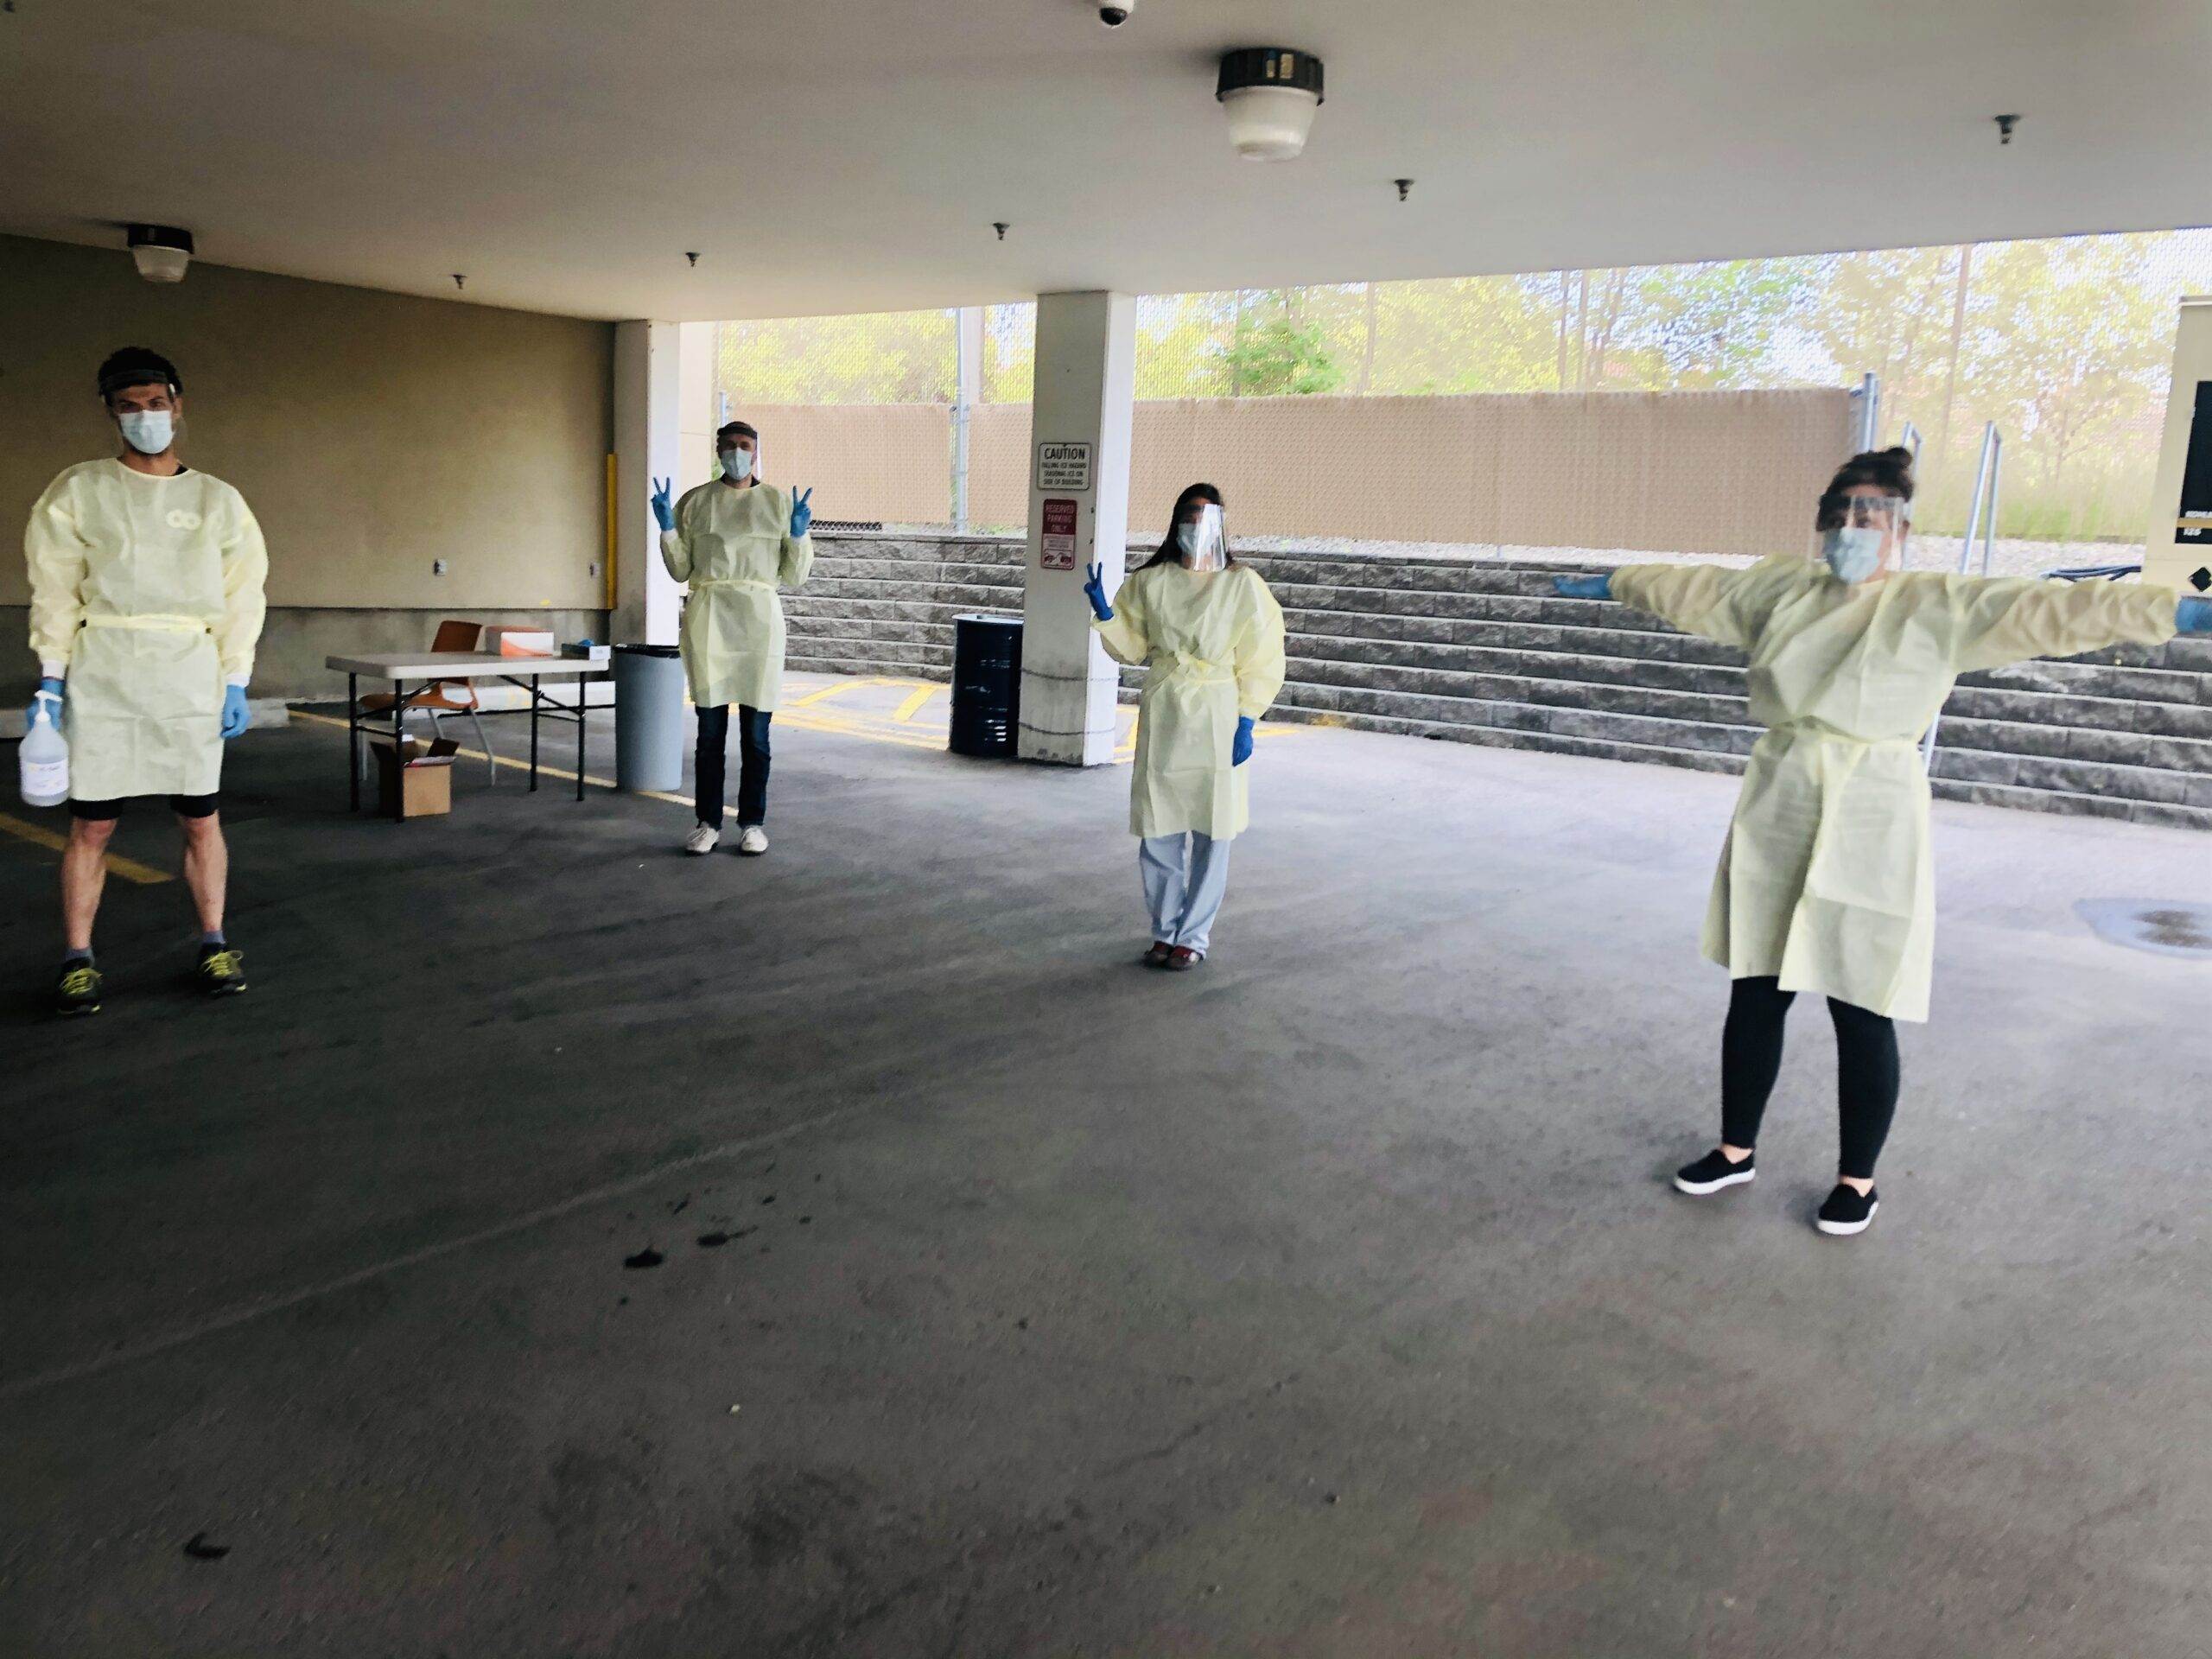 group of 4 Alex staff dressed in full PPE standing 6 feet apart